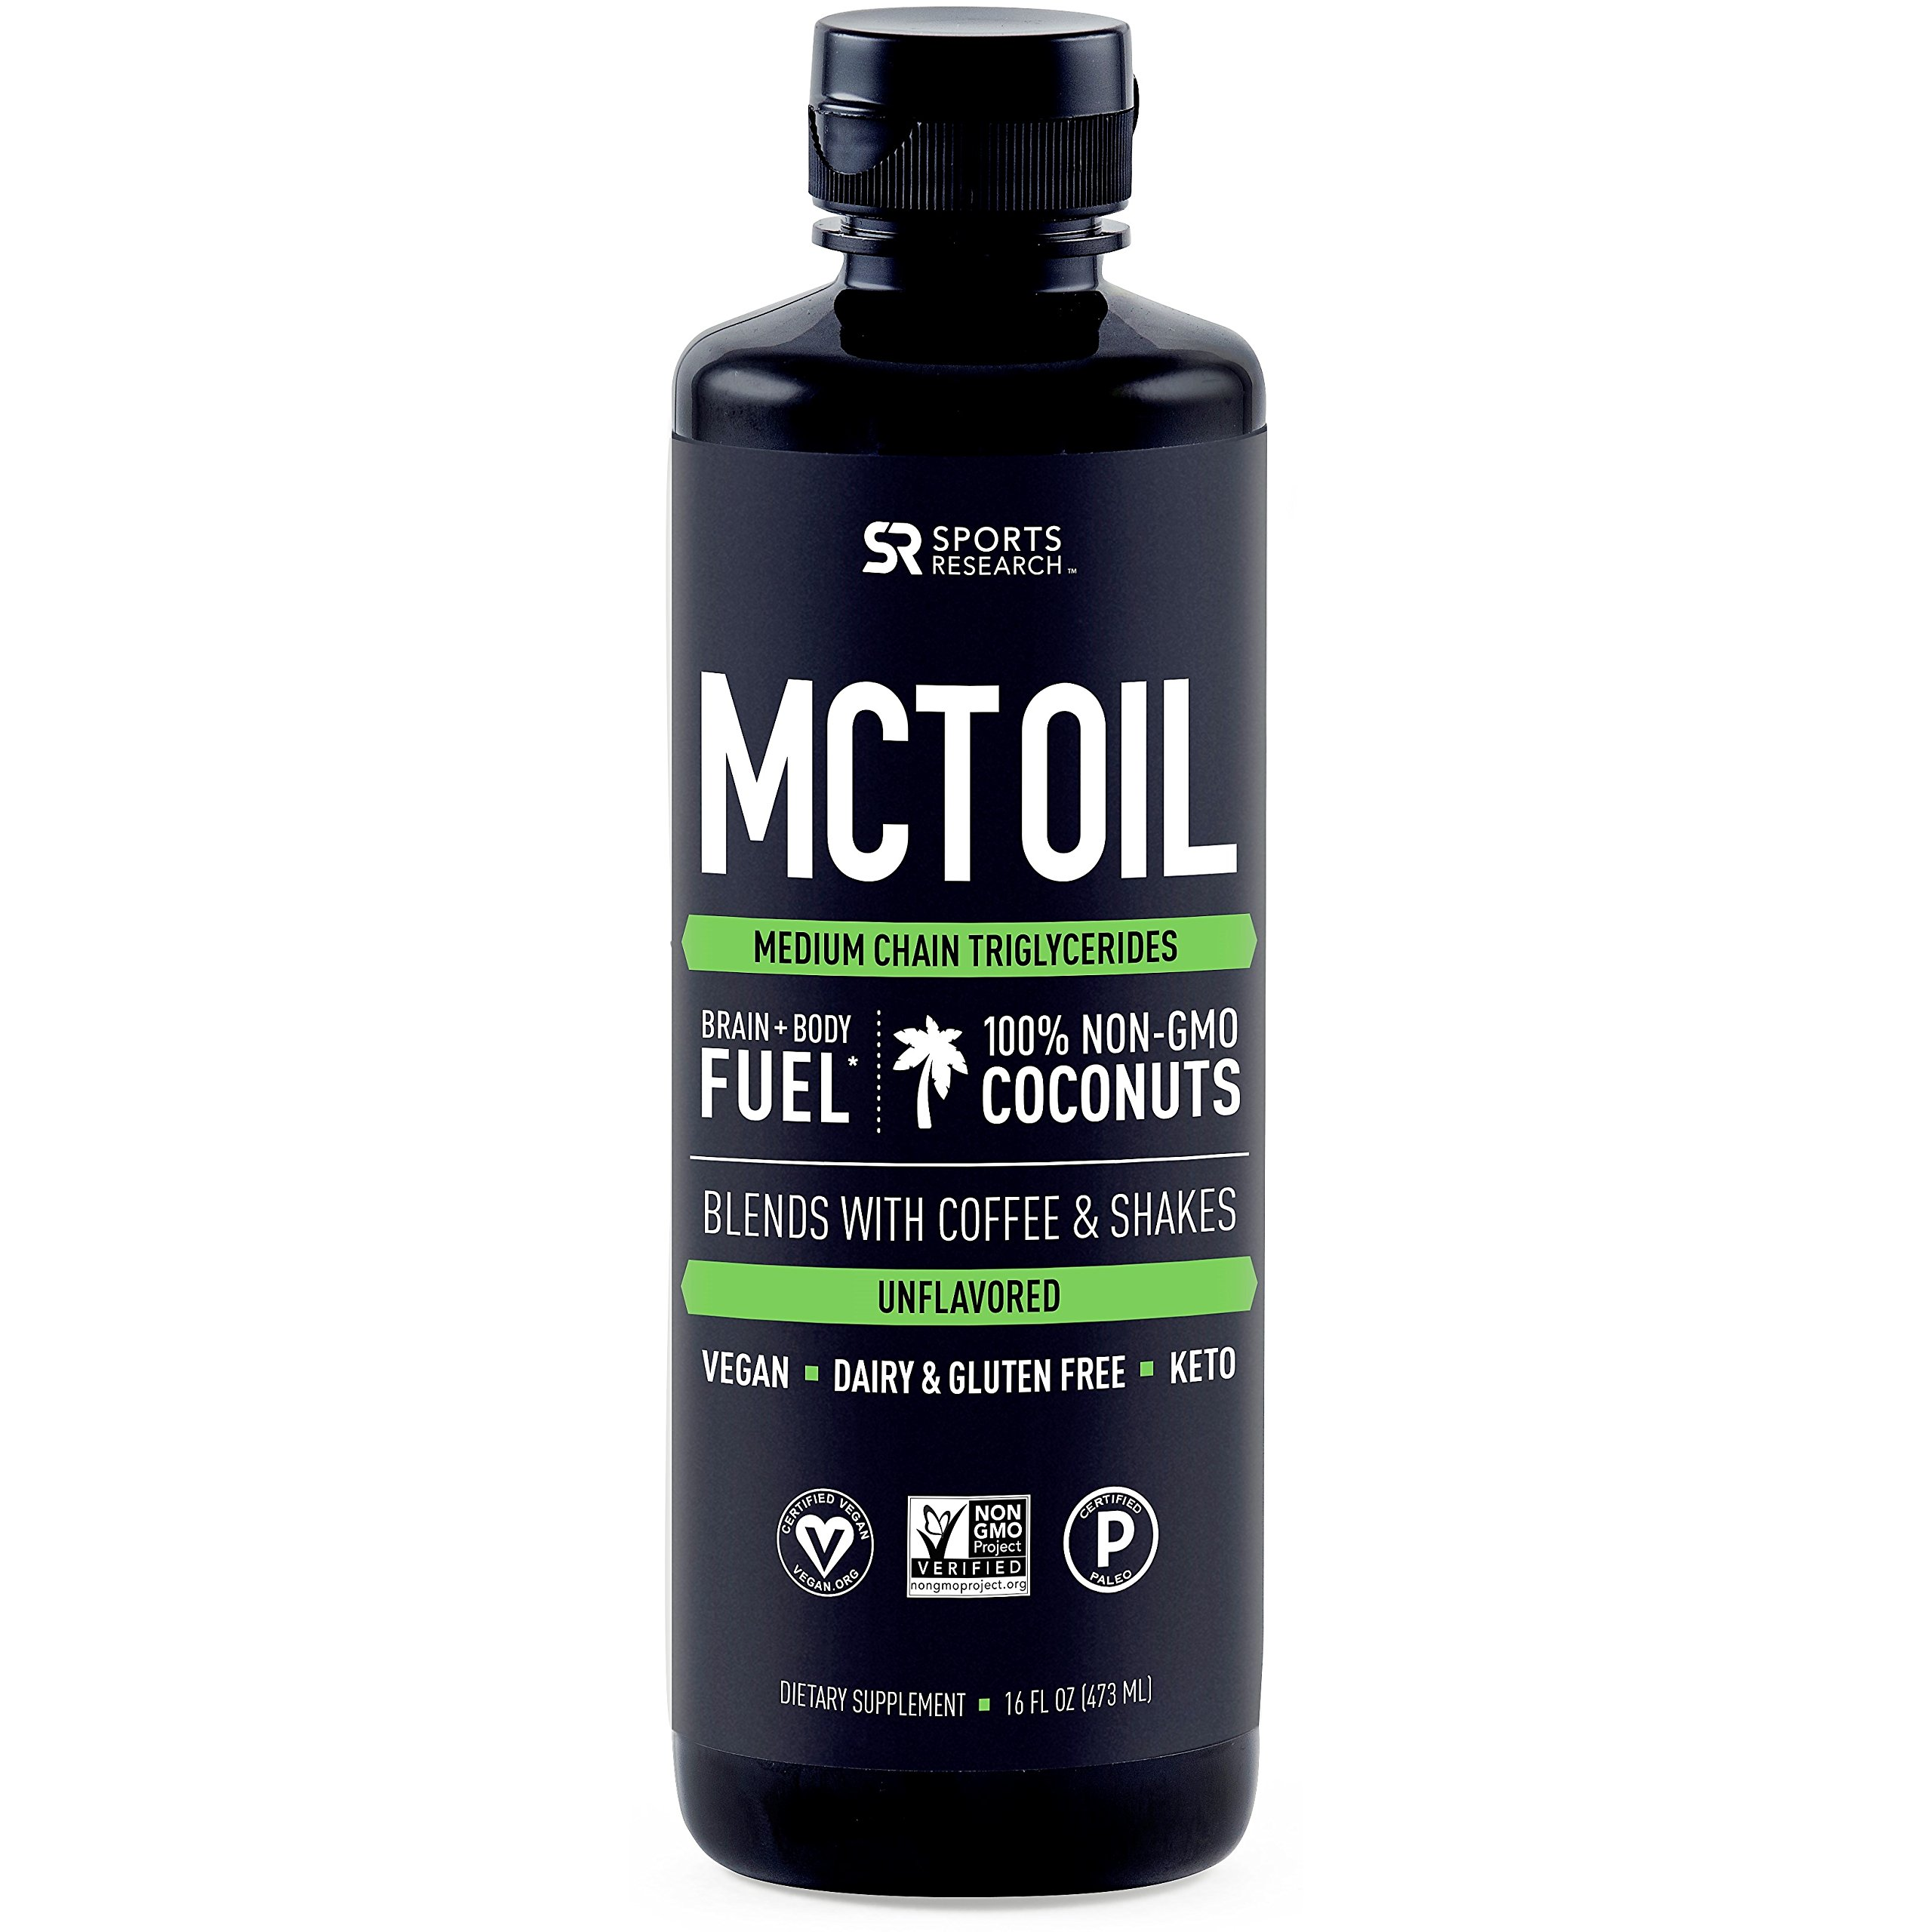 Premium MCT Oil derived only from Coconut Oil - 16oz BPA Free Bottle | Ketogenic and Paleo Diet Approved ~ Non-GMO Project Verified